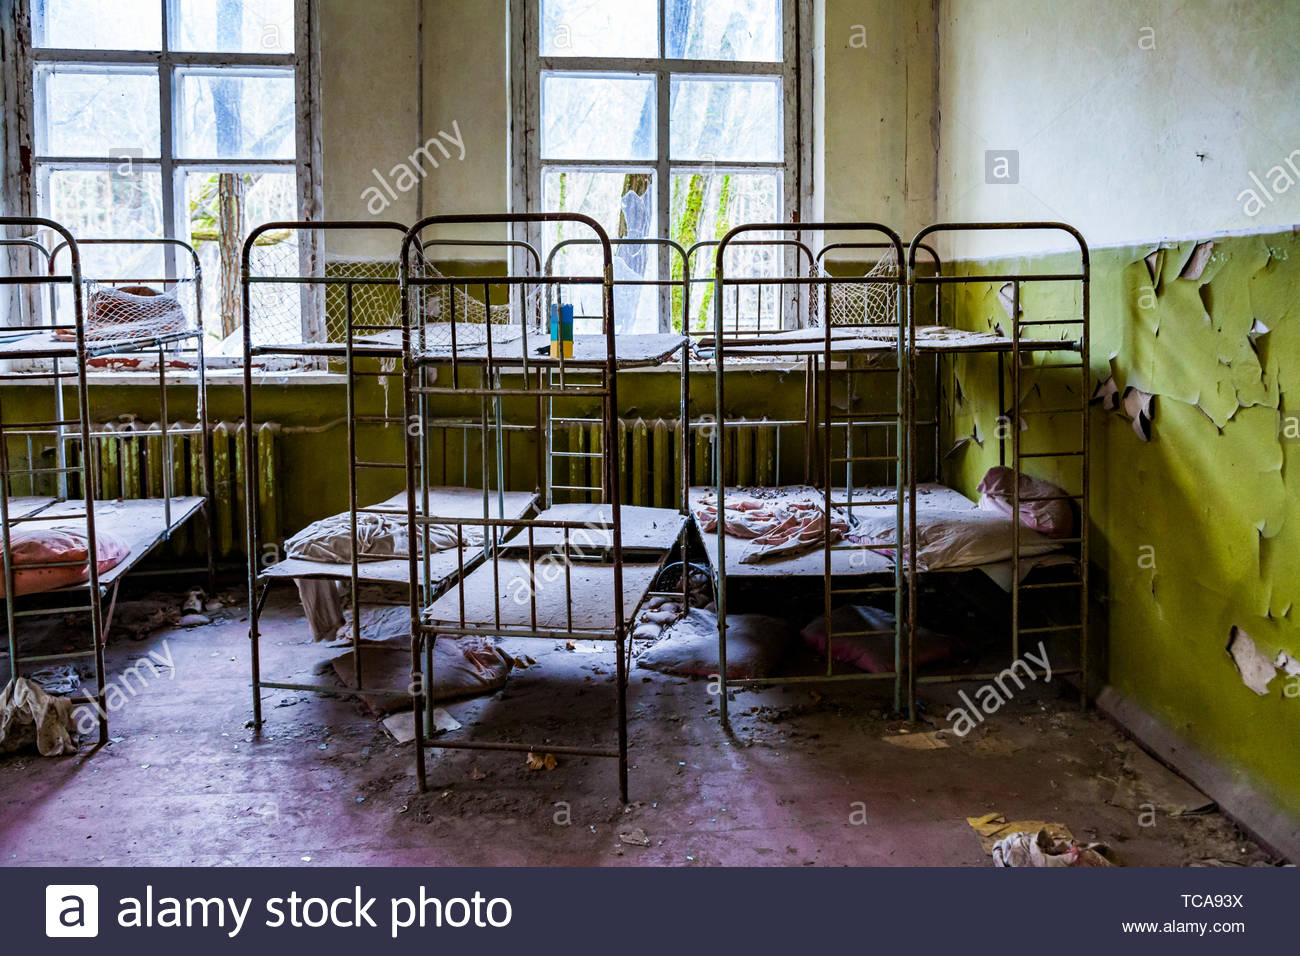 Pripyat, Chernobyl exclusion zone. The interior of a kindergarten in an abandoned city - Stock Image